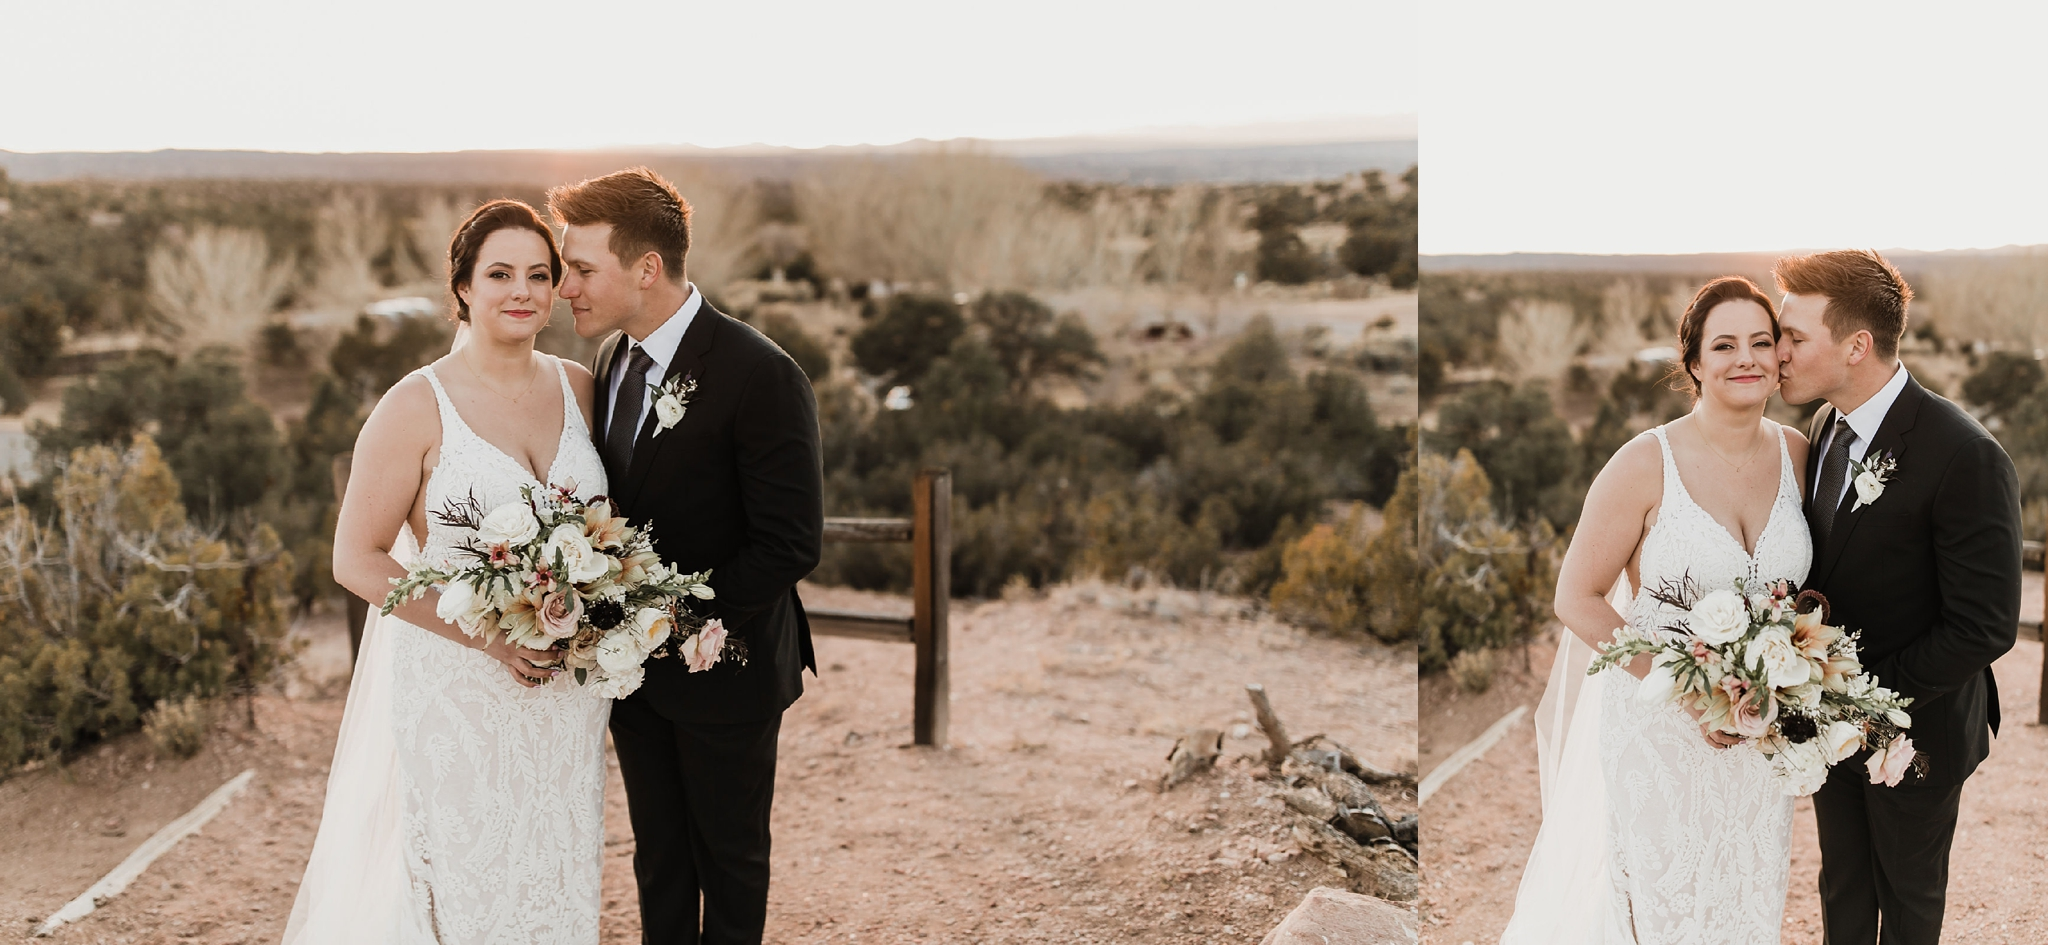 Alicia+lucia+photography+-+albuquerque+wedding+photographer+-+santa+fe+wedding+photography+-+new+mexico+wedding+photographer+-+new+mexico+wedding+-+santa+fe+wedding+-+four+seasons+wedding+-+winter+wedding_0091.jpg